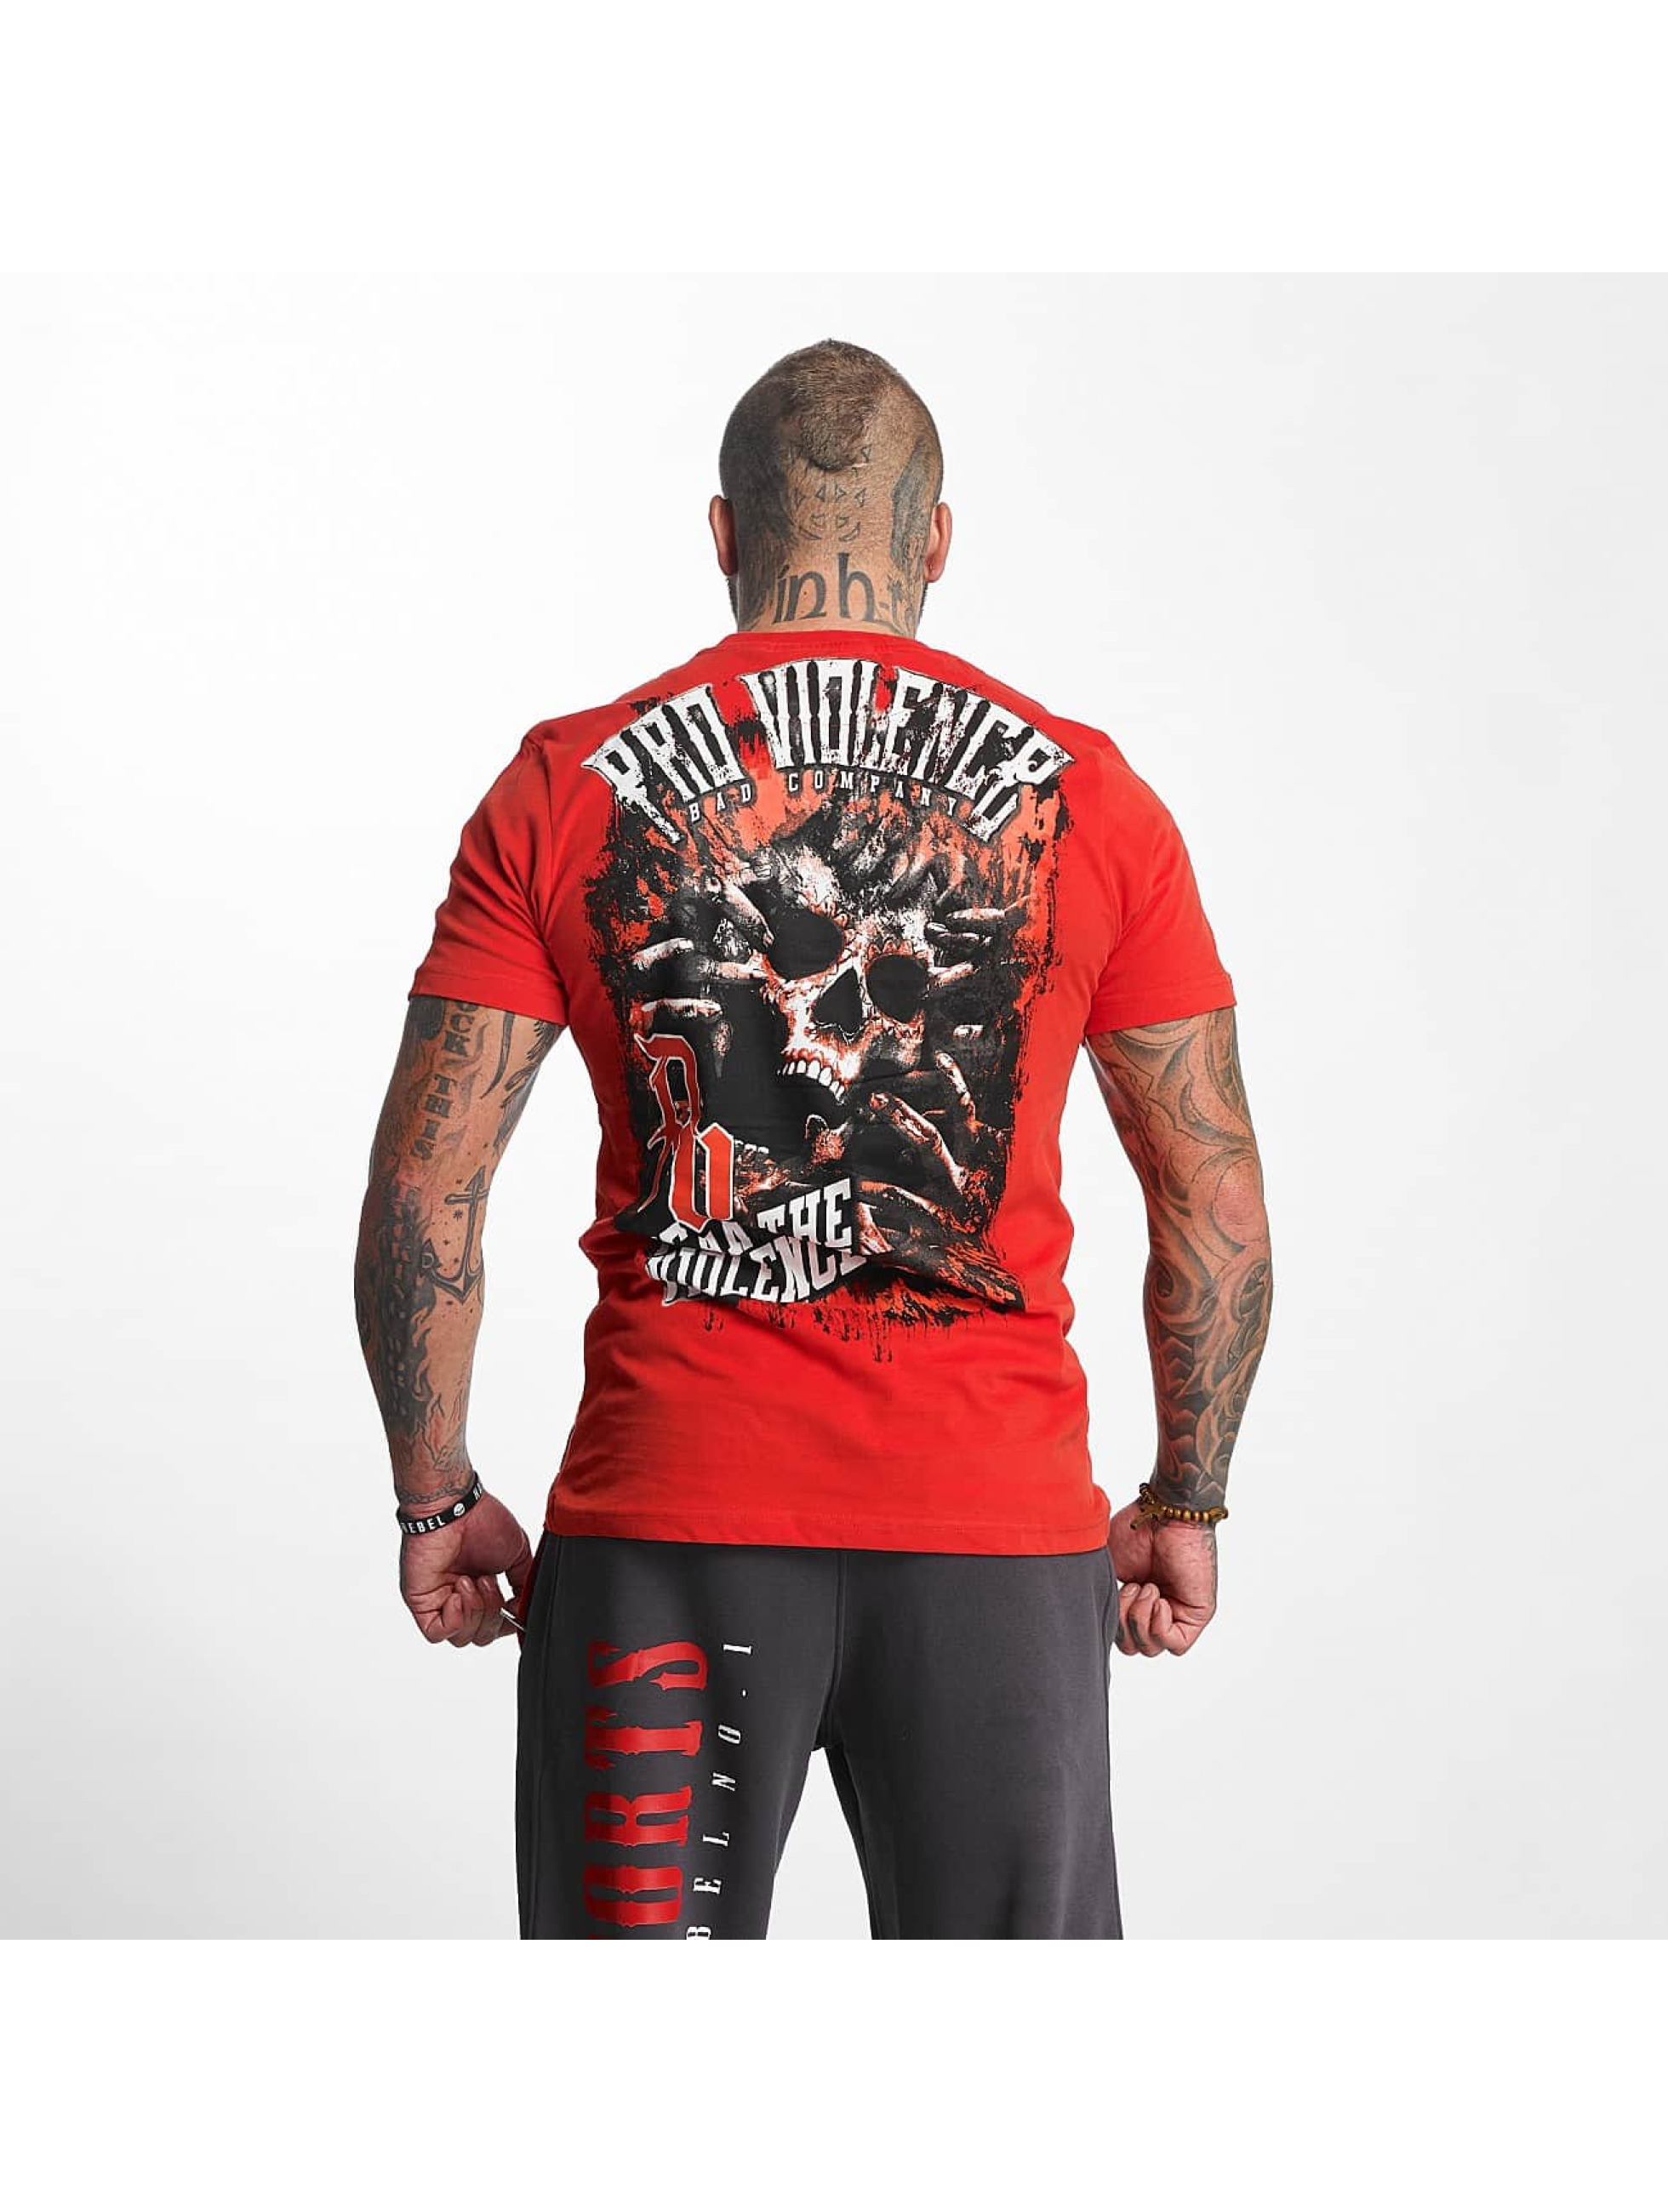 Pro Violence Streetwear T-Shirt The Violence Fear red